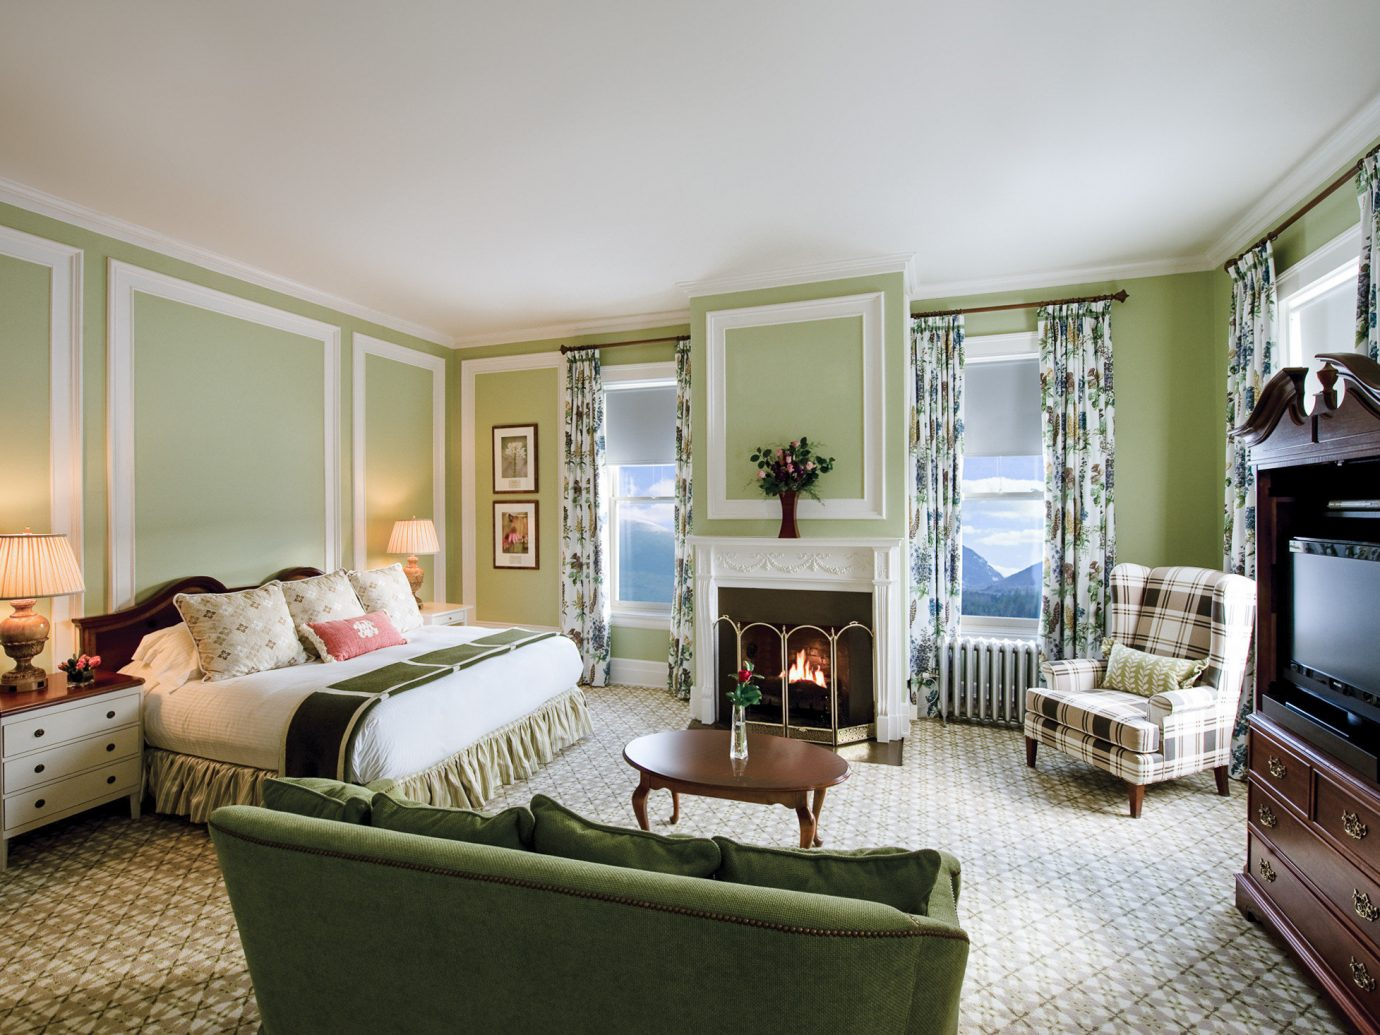 Boutique Hotels Fall Food + Drink Hotels Outdoors + Adventure Weekend Getaways indoor floor wall room Living living room interior design home Suite real estate furniture window estate house area decorated